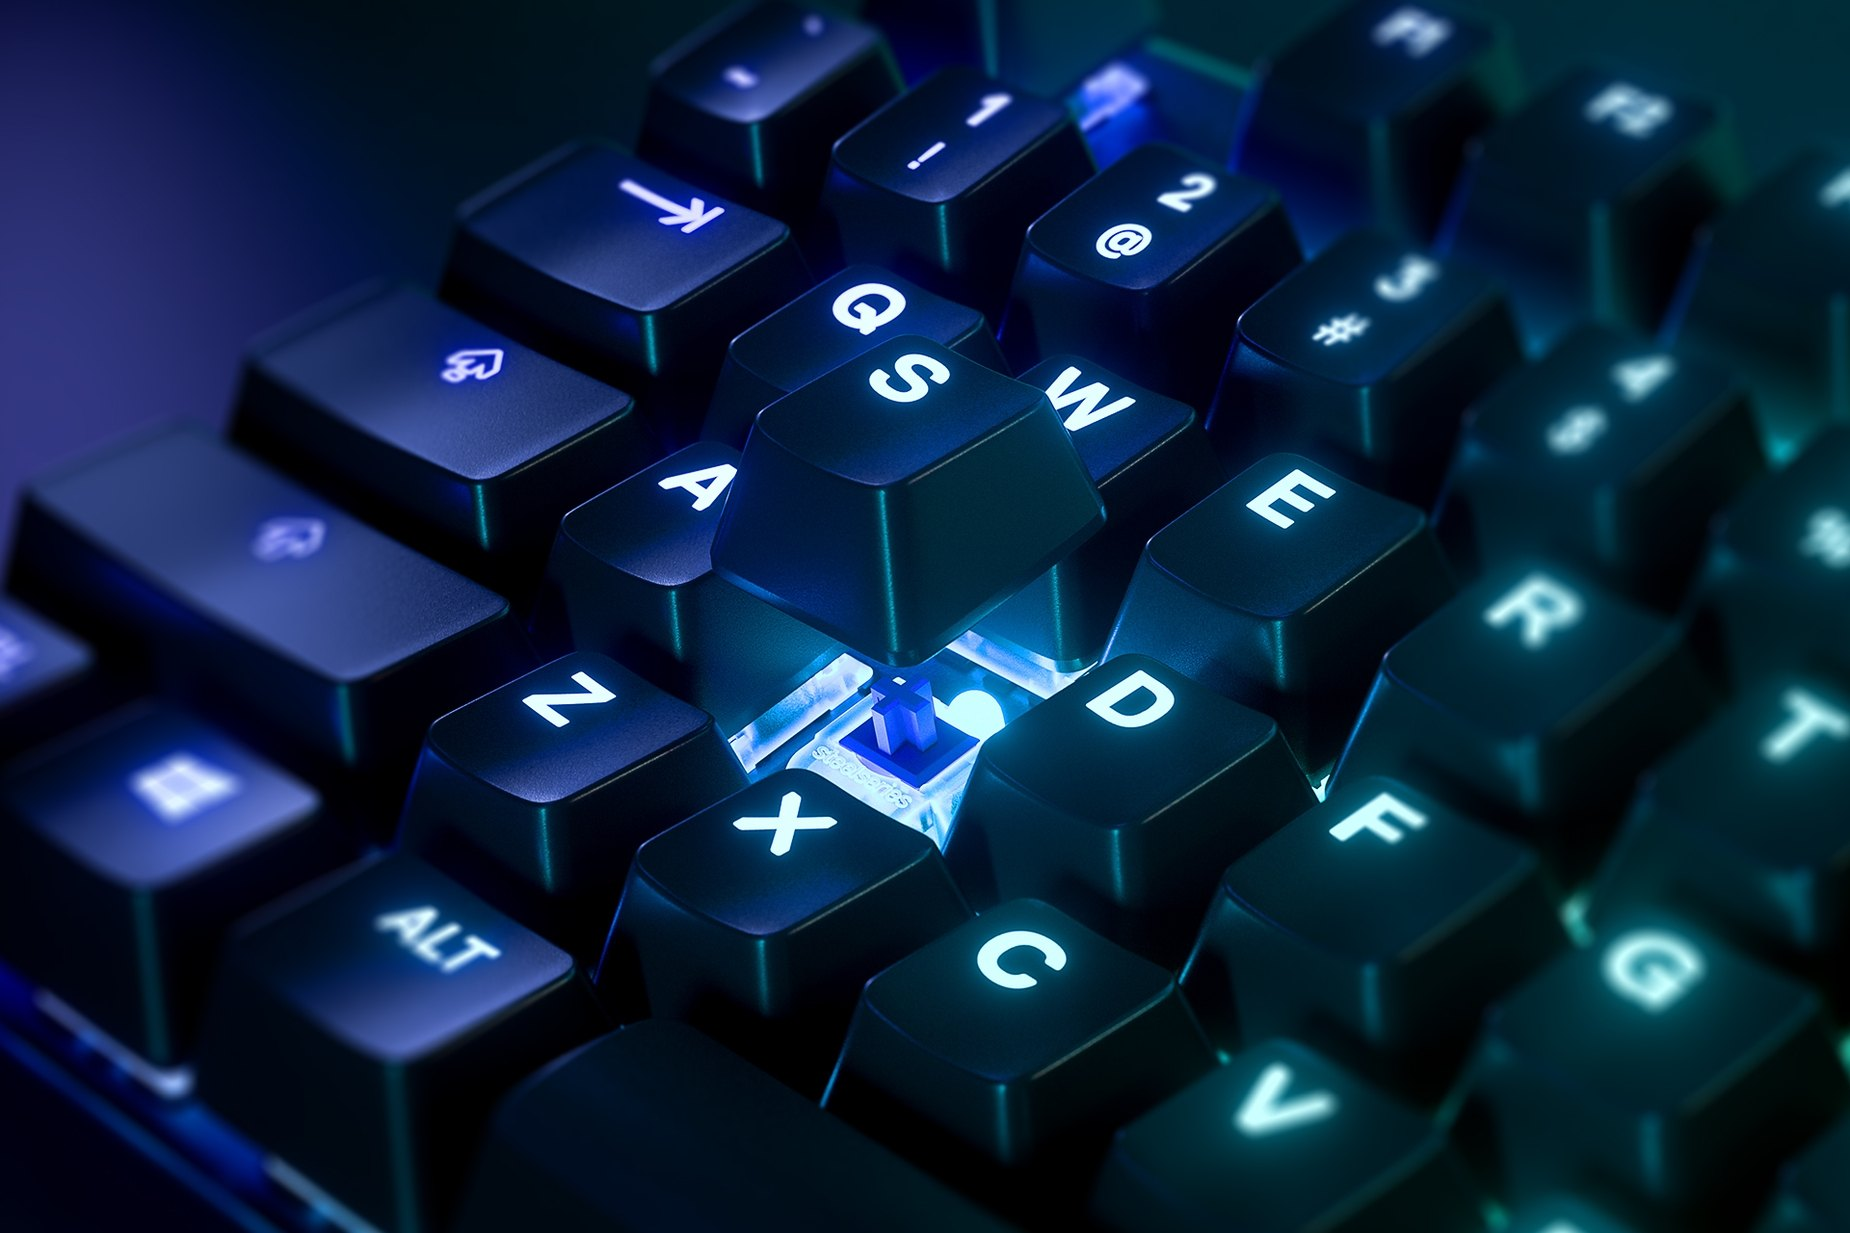 Zoomed in view of a single key on the Korean - Apex 7 (Blue Switch) gaming keyboard, the key is raised up to show the SteelSeries QX2 Mechanical RGB Switch underneath